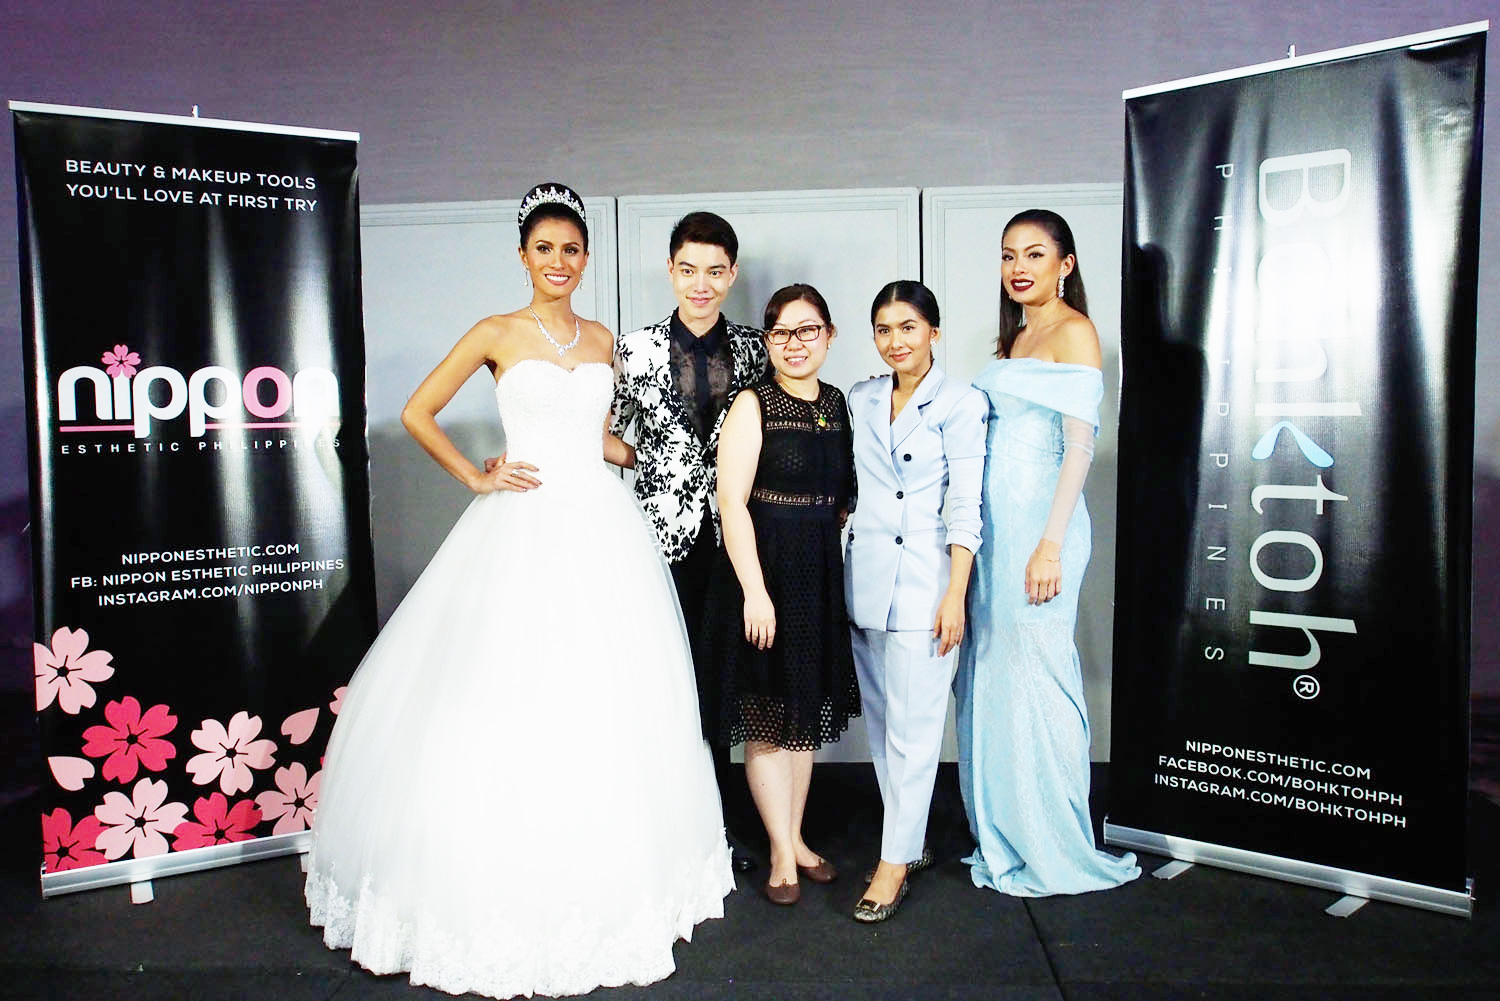 Lia Andrea Ramos, Nongchat, Nippon Esthetic Philippines CEO Sydney Go, Bohktoh Lashes CEO Prang,and Angela See